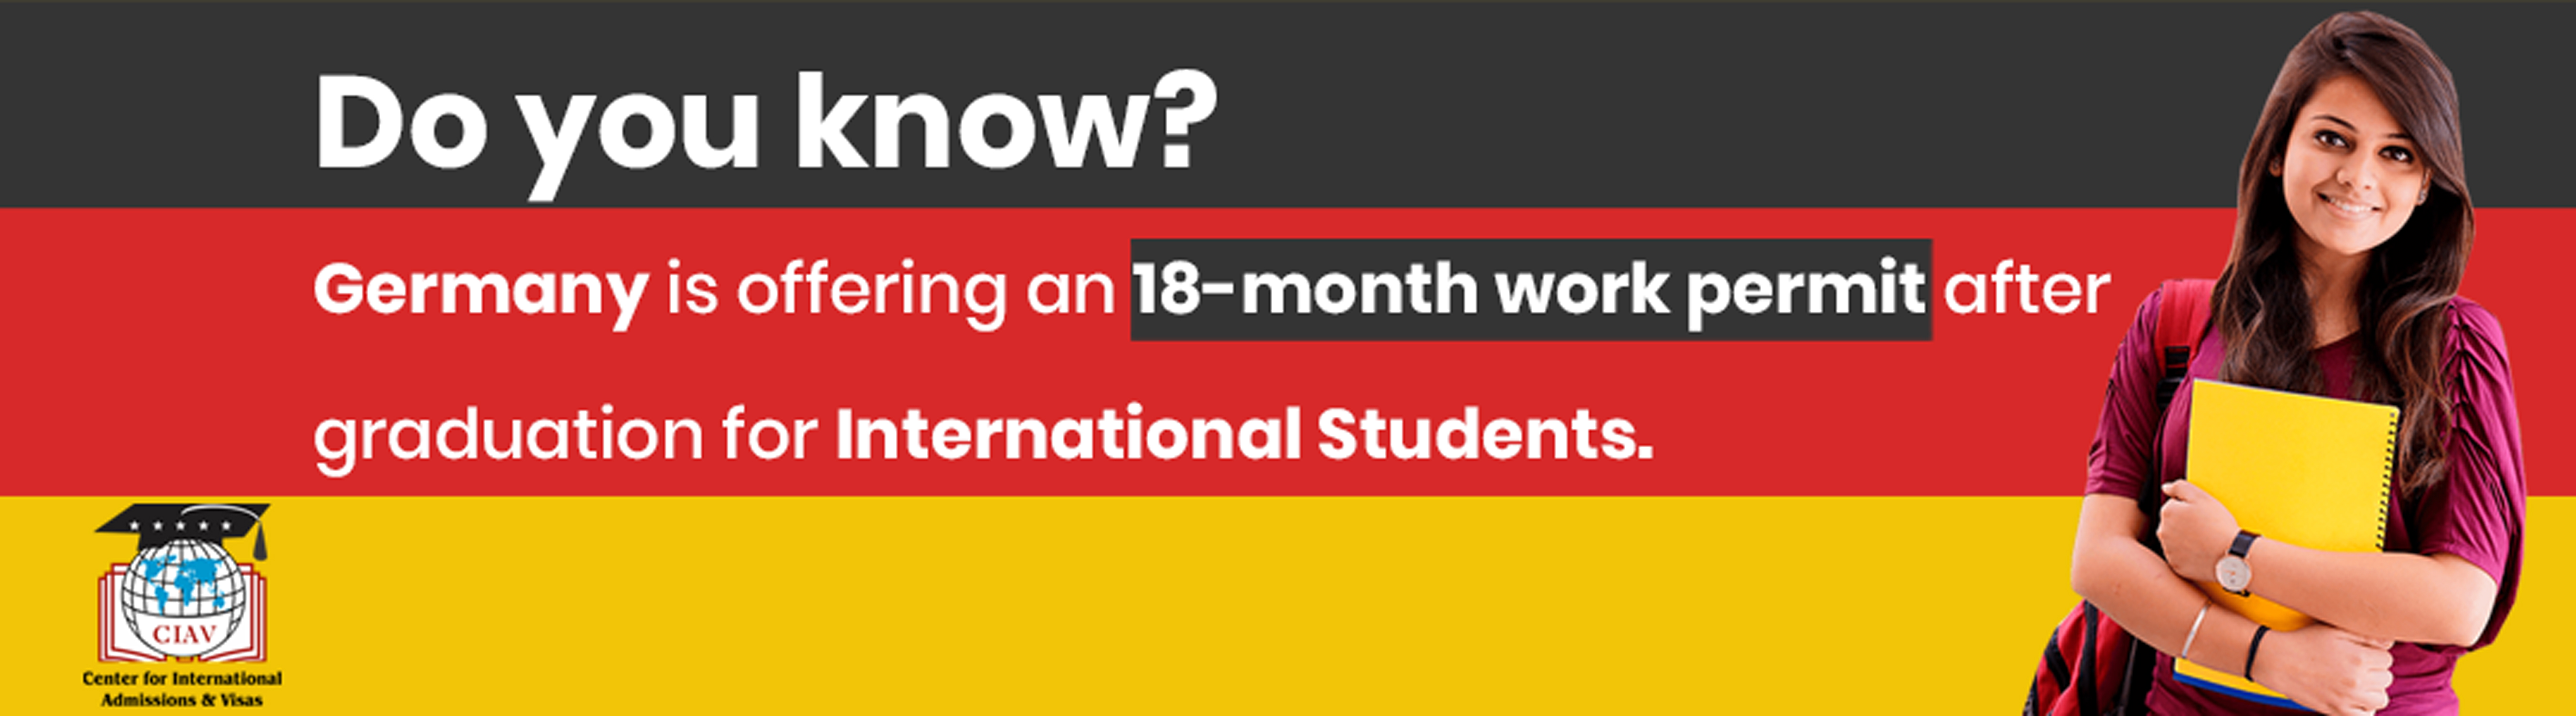 Germany is offering an 18-month work permit after graduation for International Students.